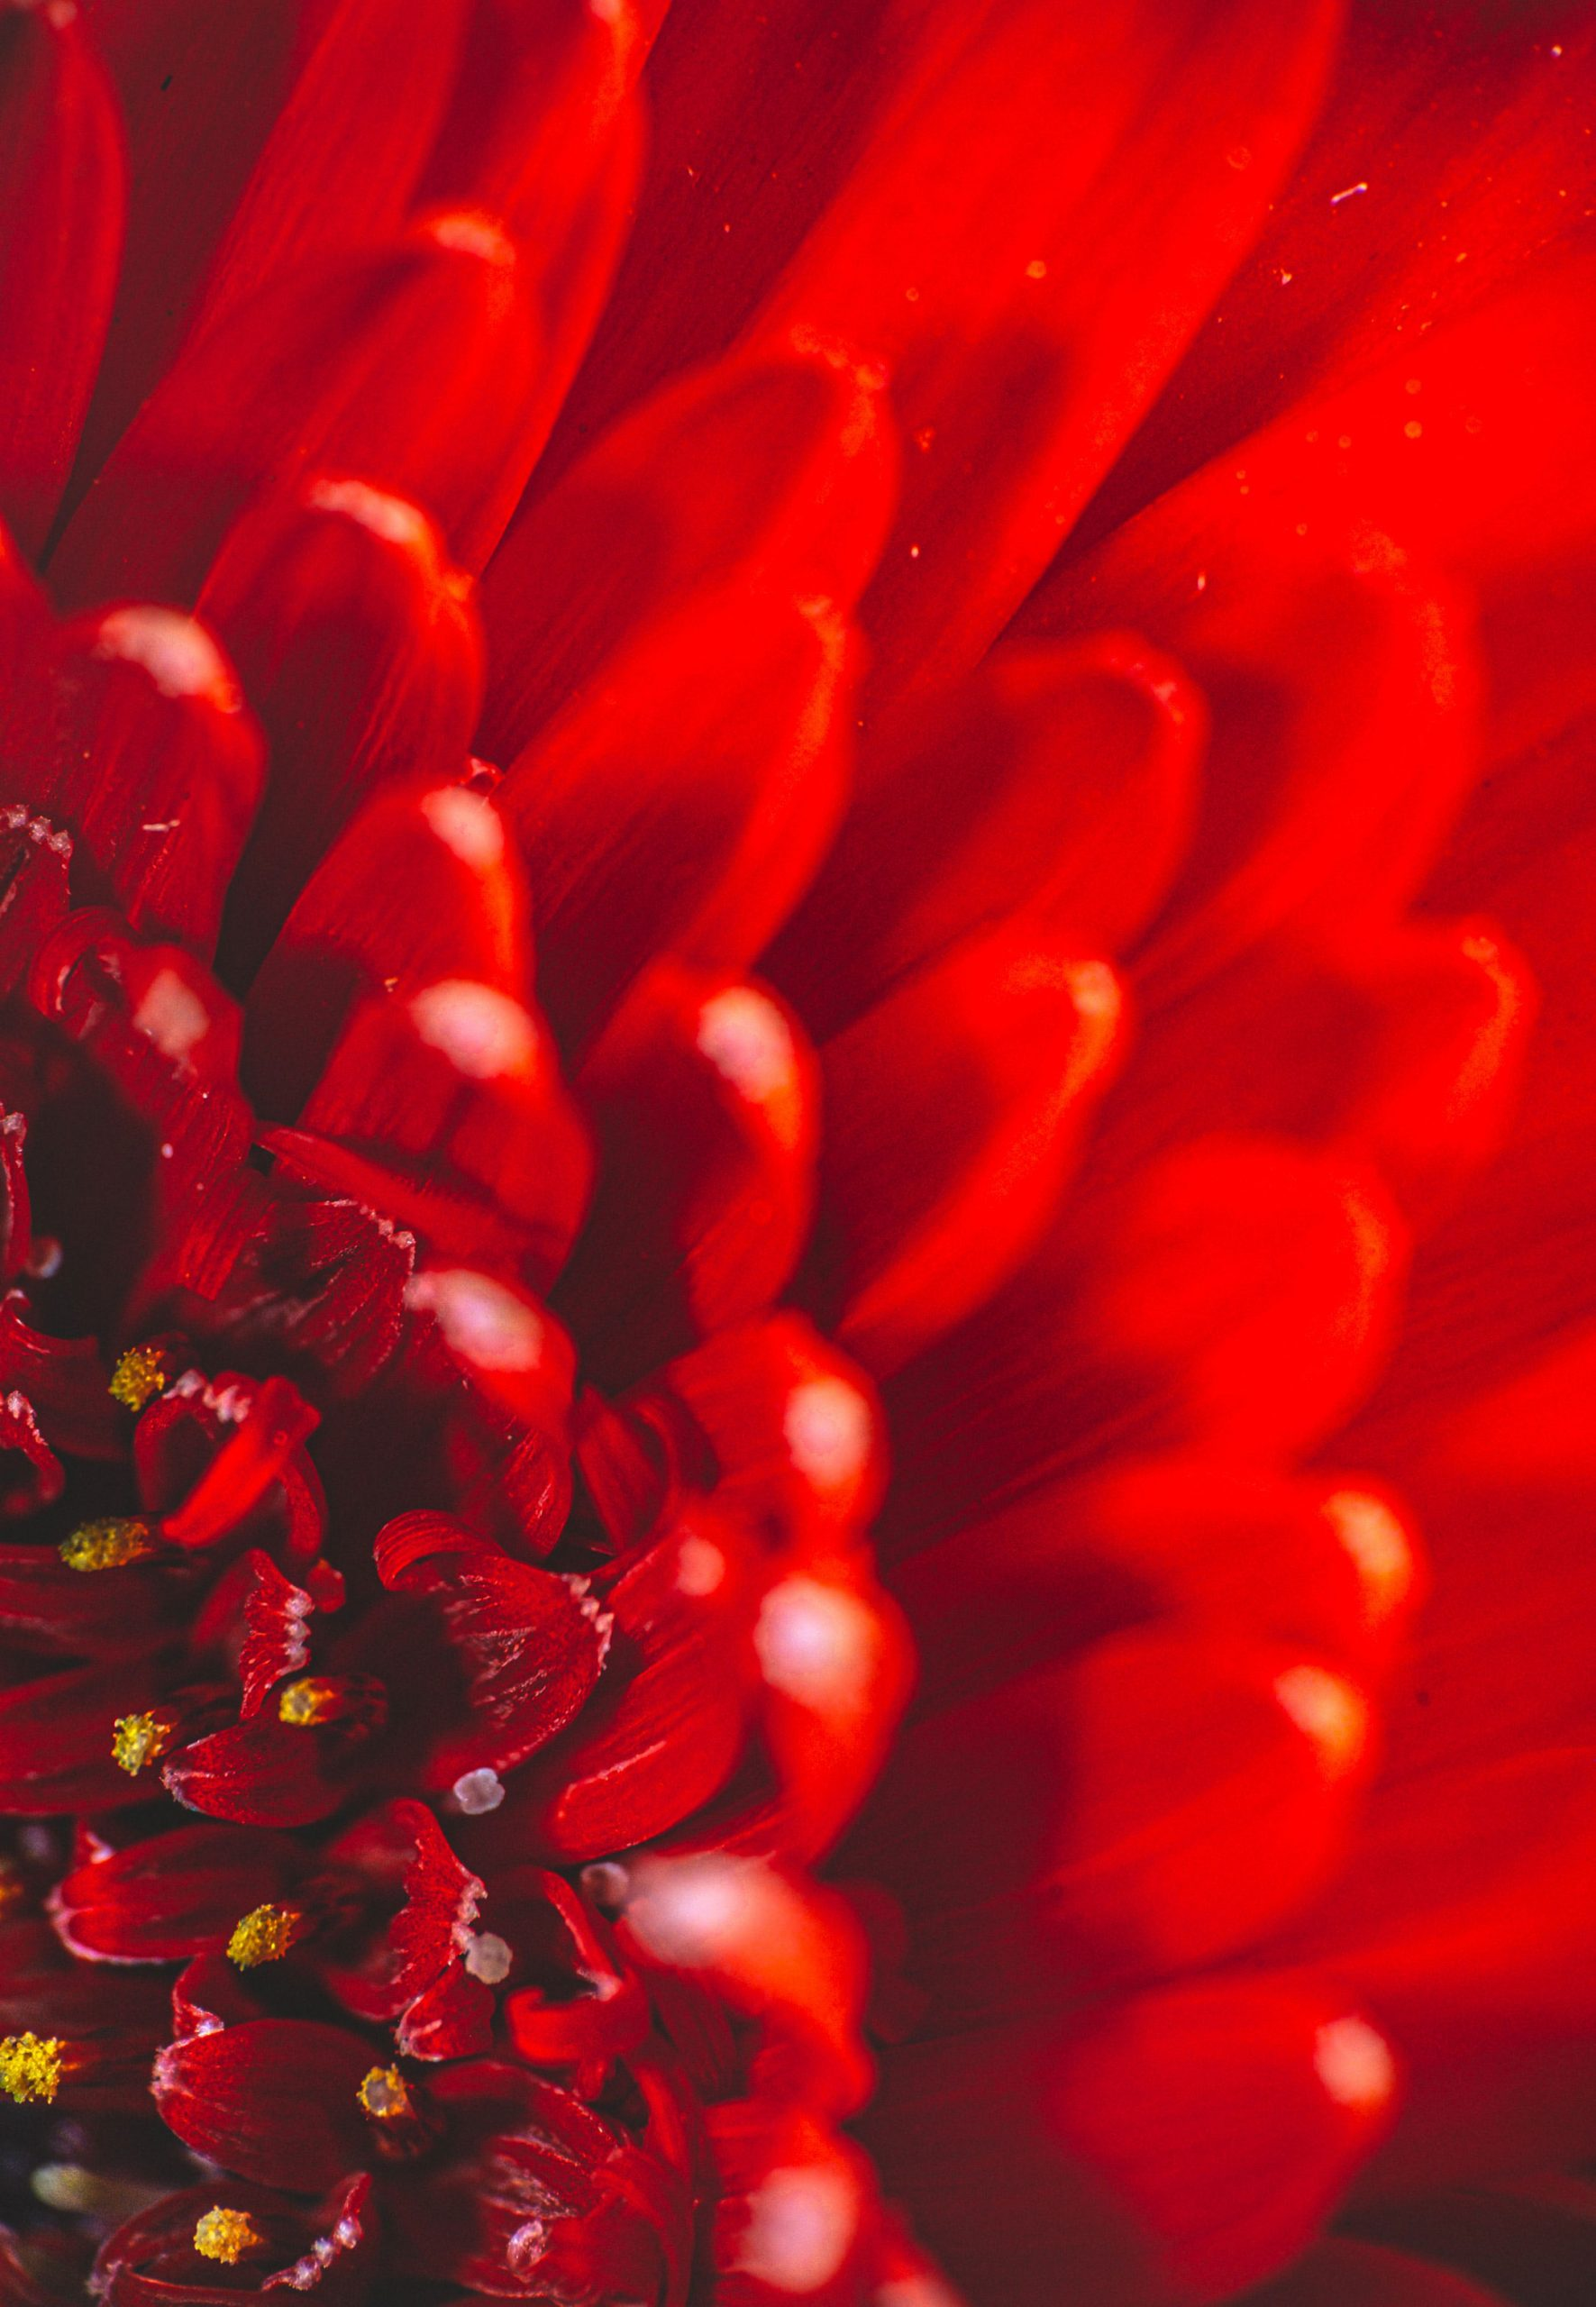 Red Wallpaper images hd download